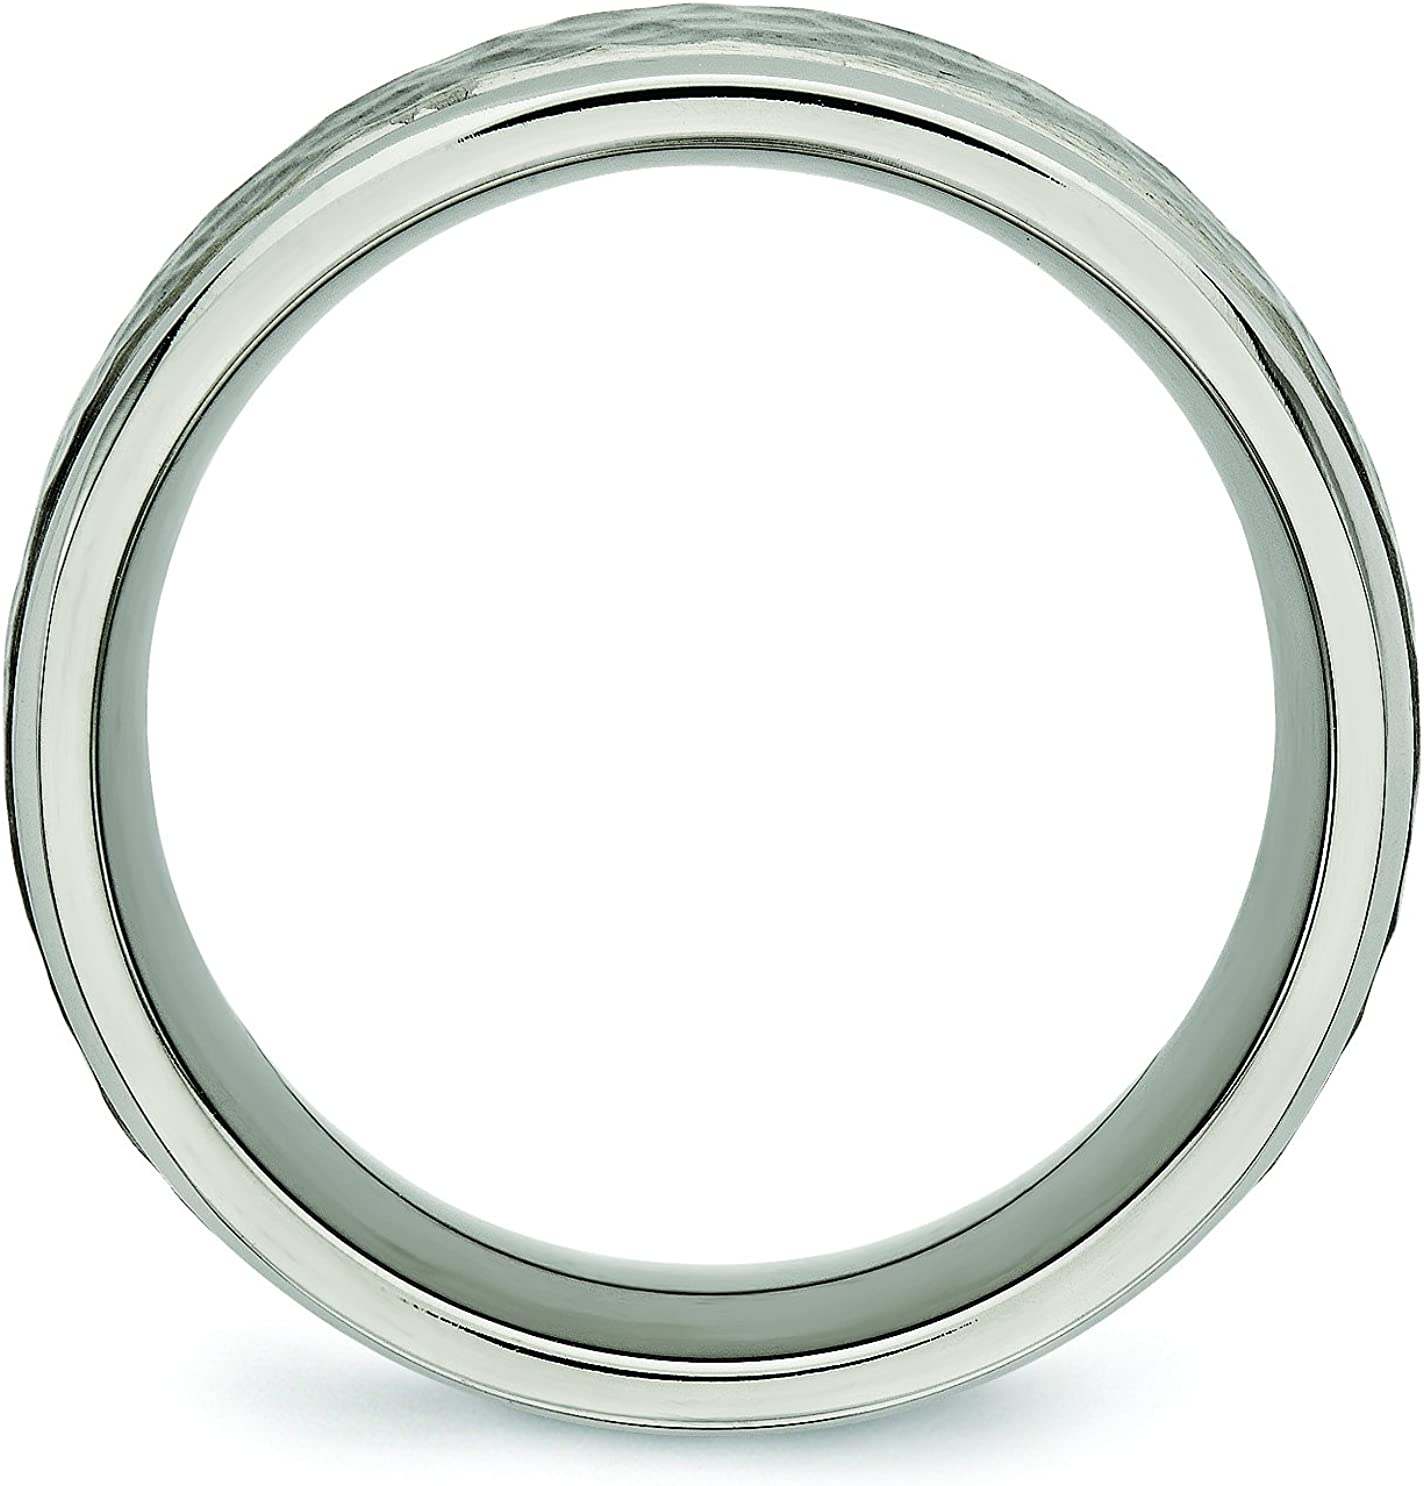 Titanium 8 mm Polished Grooved Wedding Ring Fine Jewelry Ideal Gifts For Women